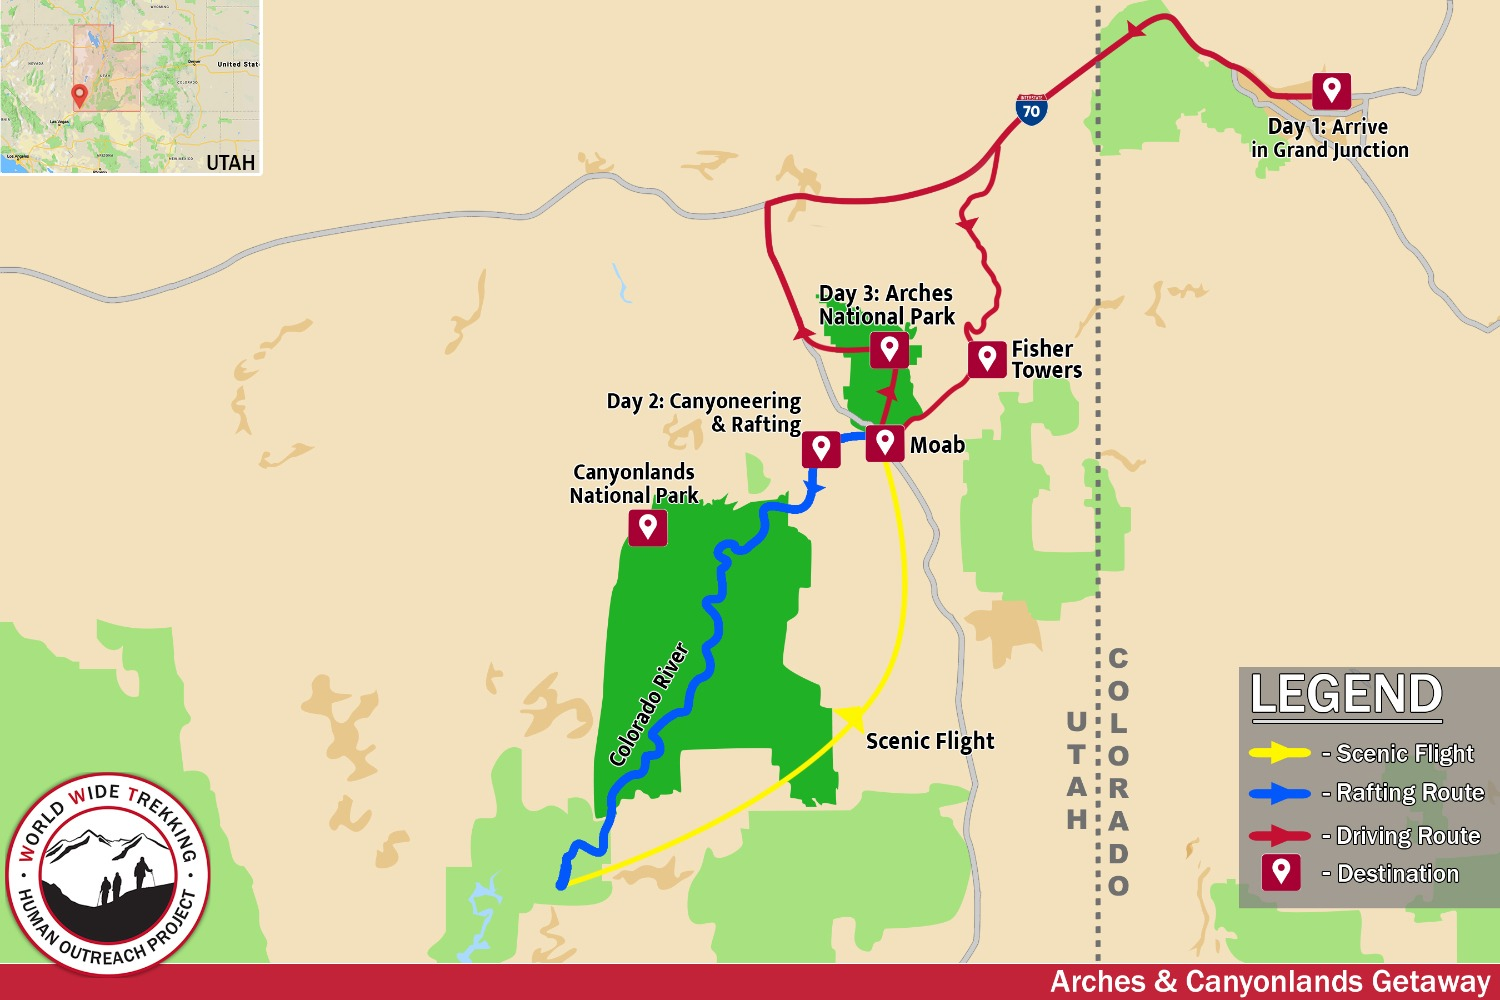 map of Arches & Canyonlands itinerary